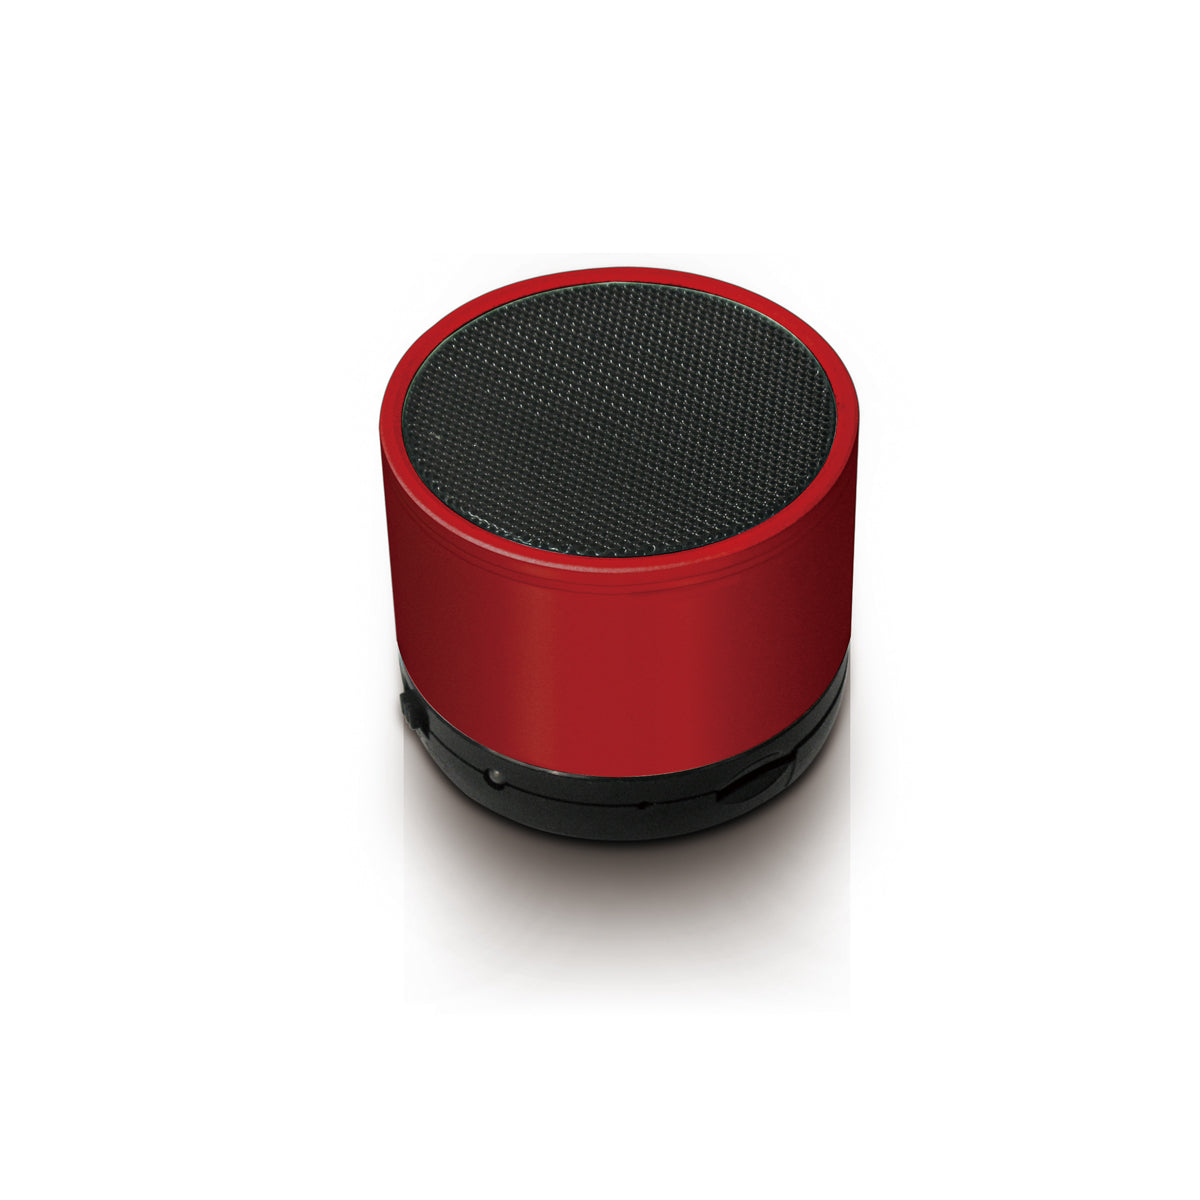 BT121-R - Bluetooth Cylinder Speaker (Red)